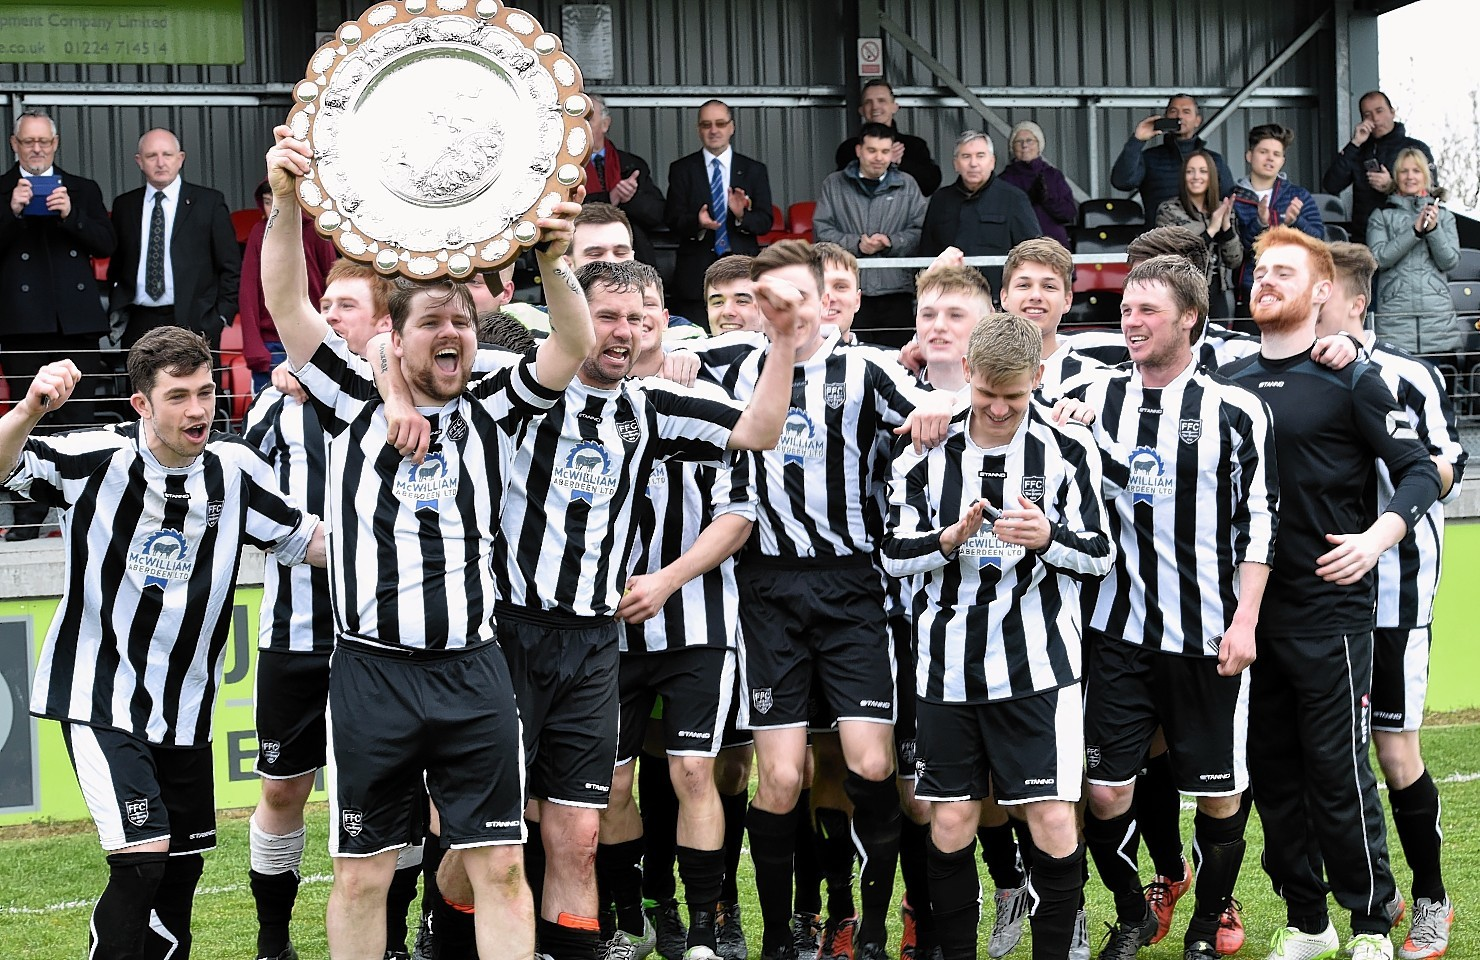 Fraserburgh celebrate claiming the shield. Picture by Colin Rennie.